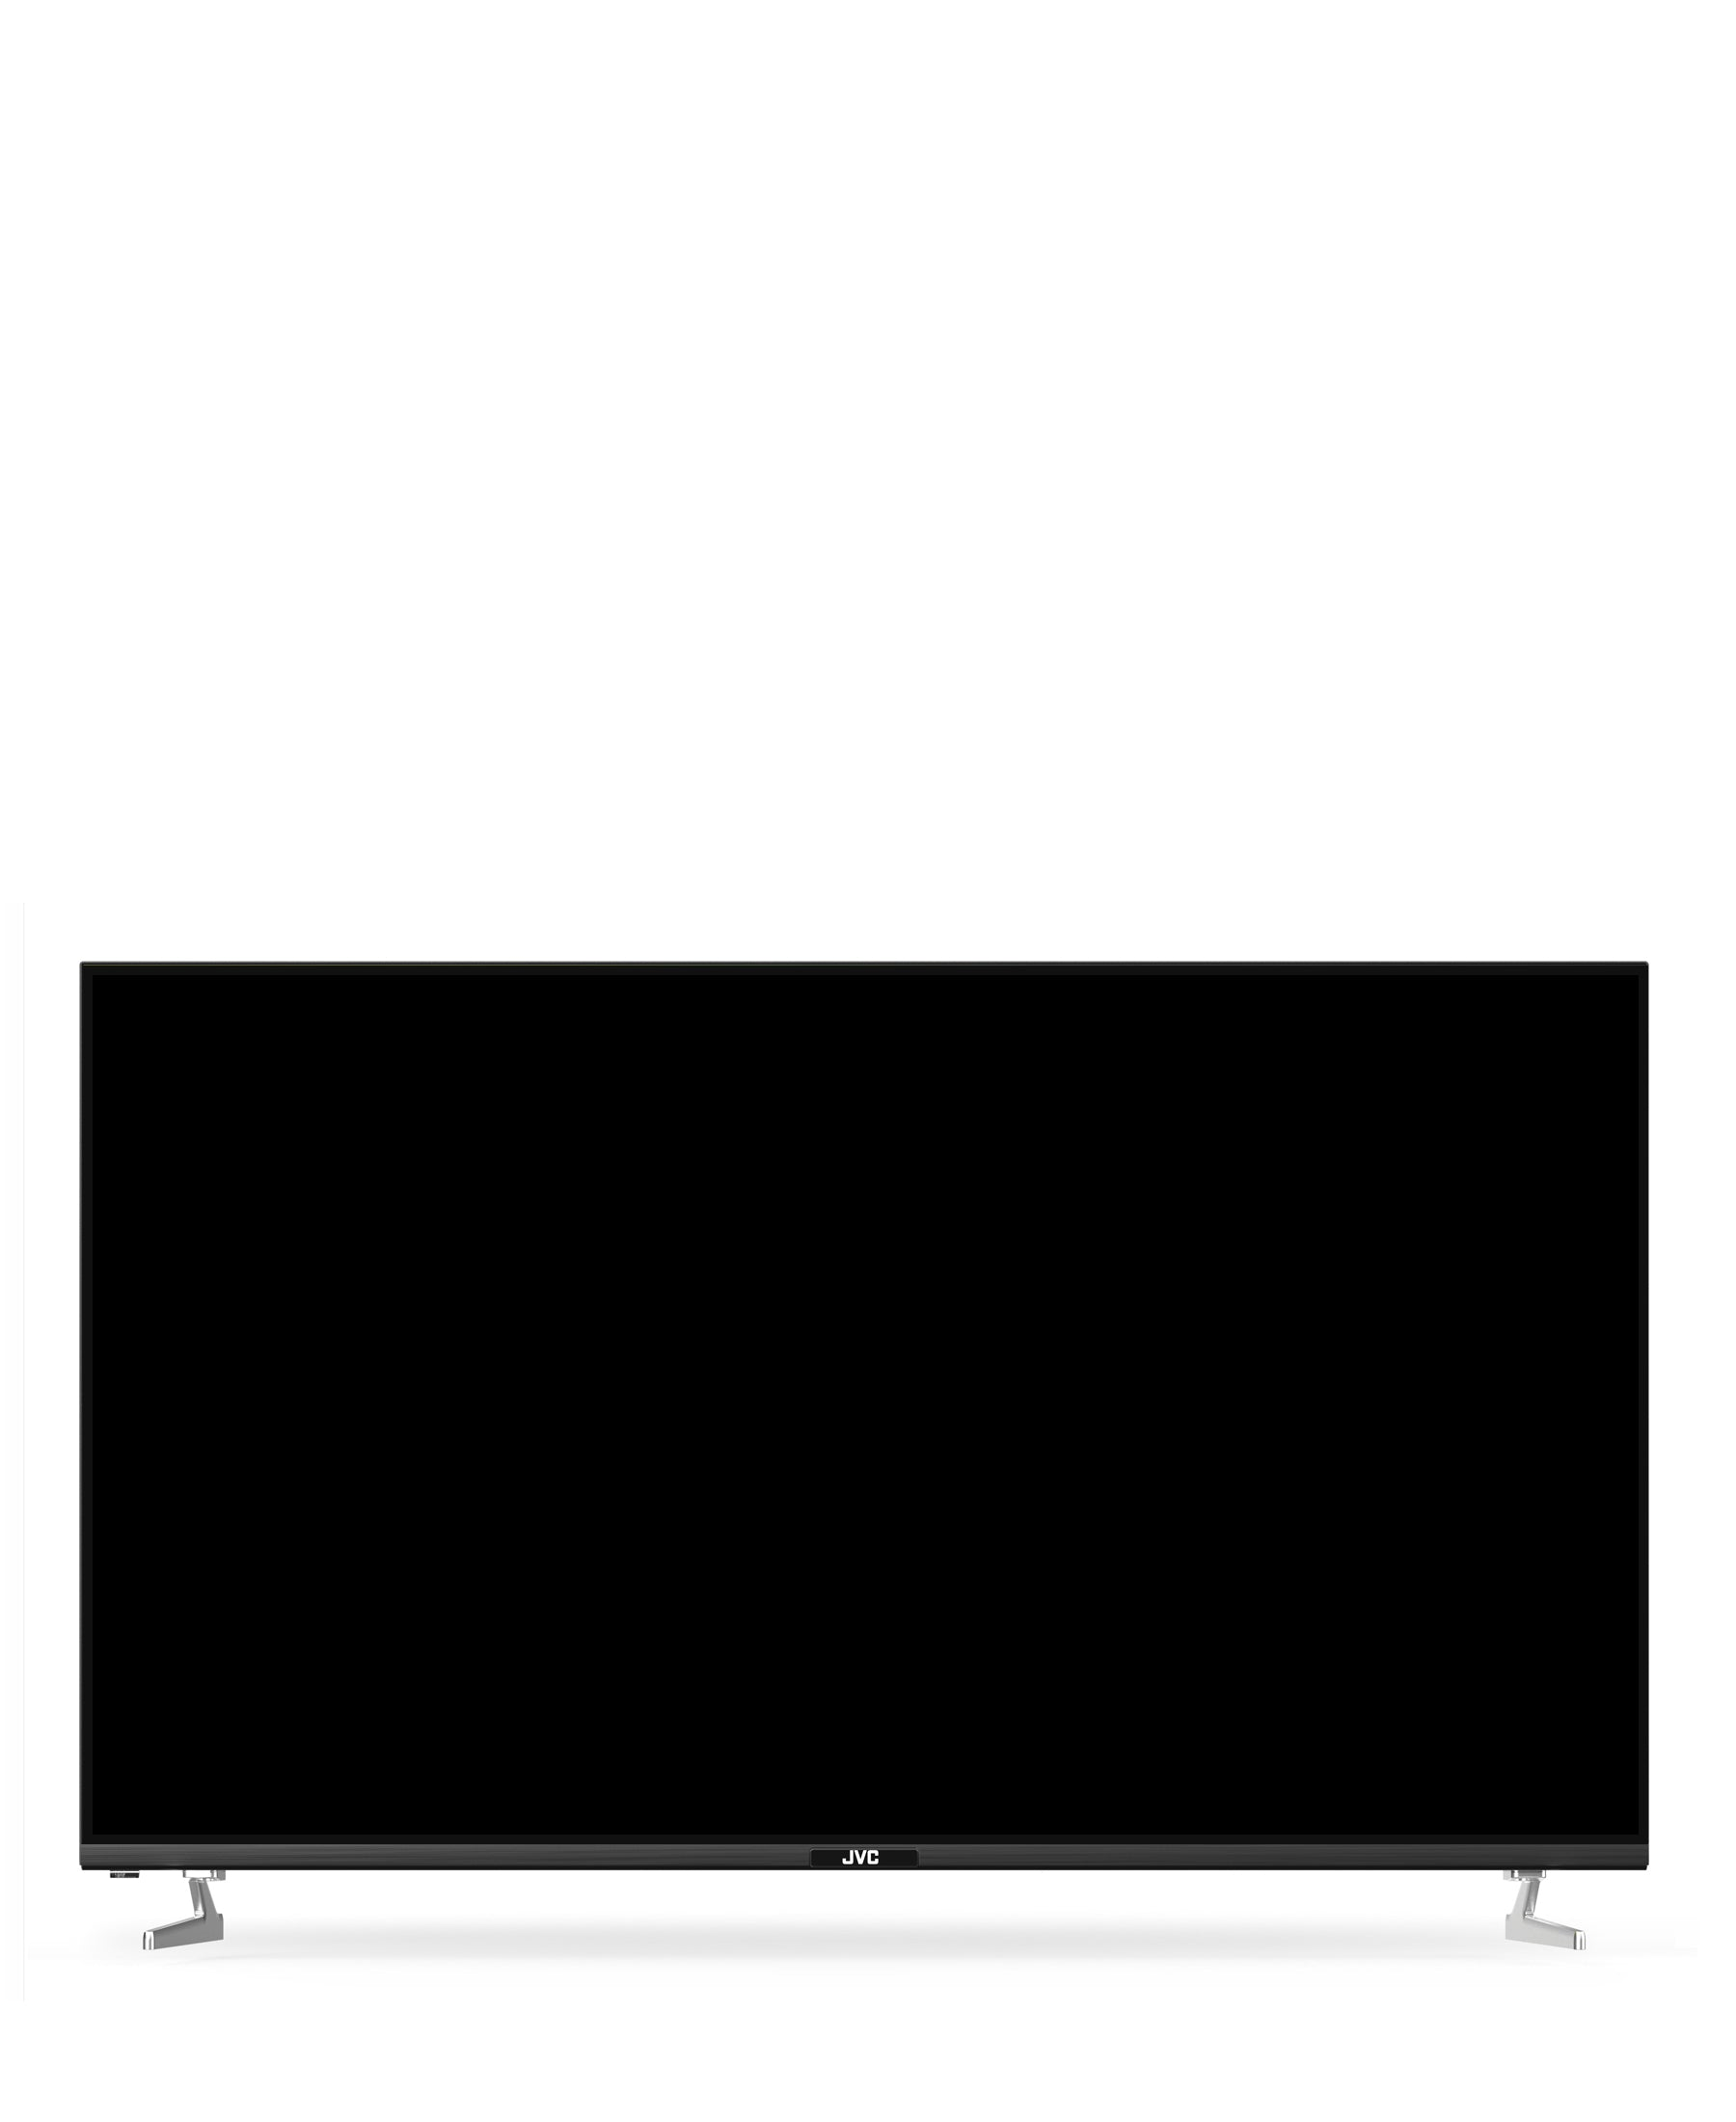 JVC 32'' Edge-less HD LED TV - Black